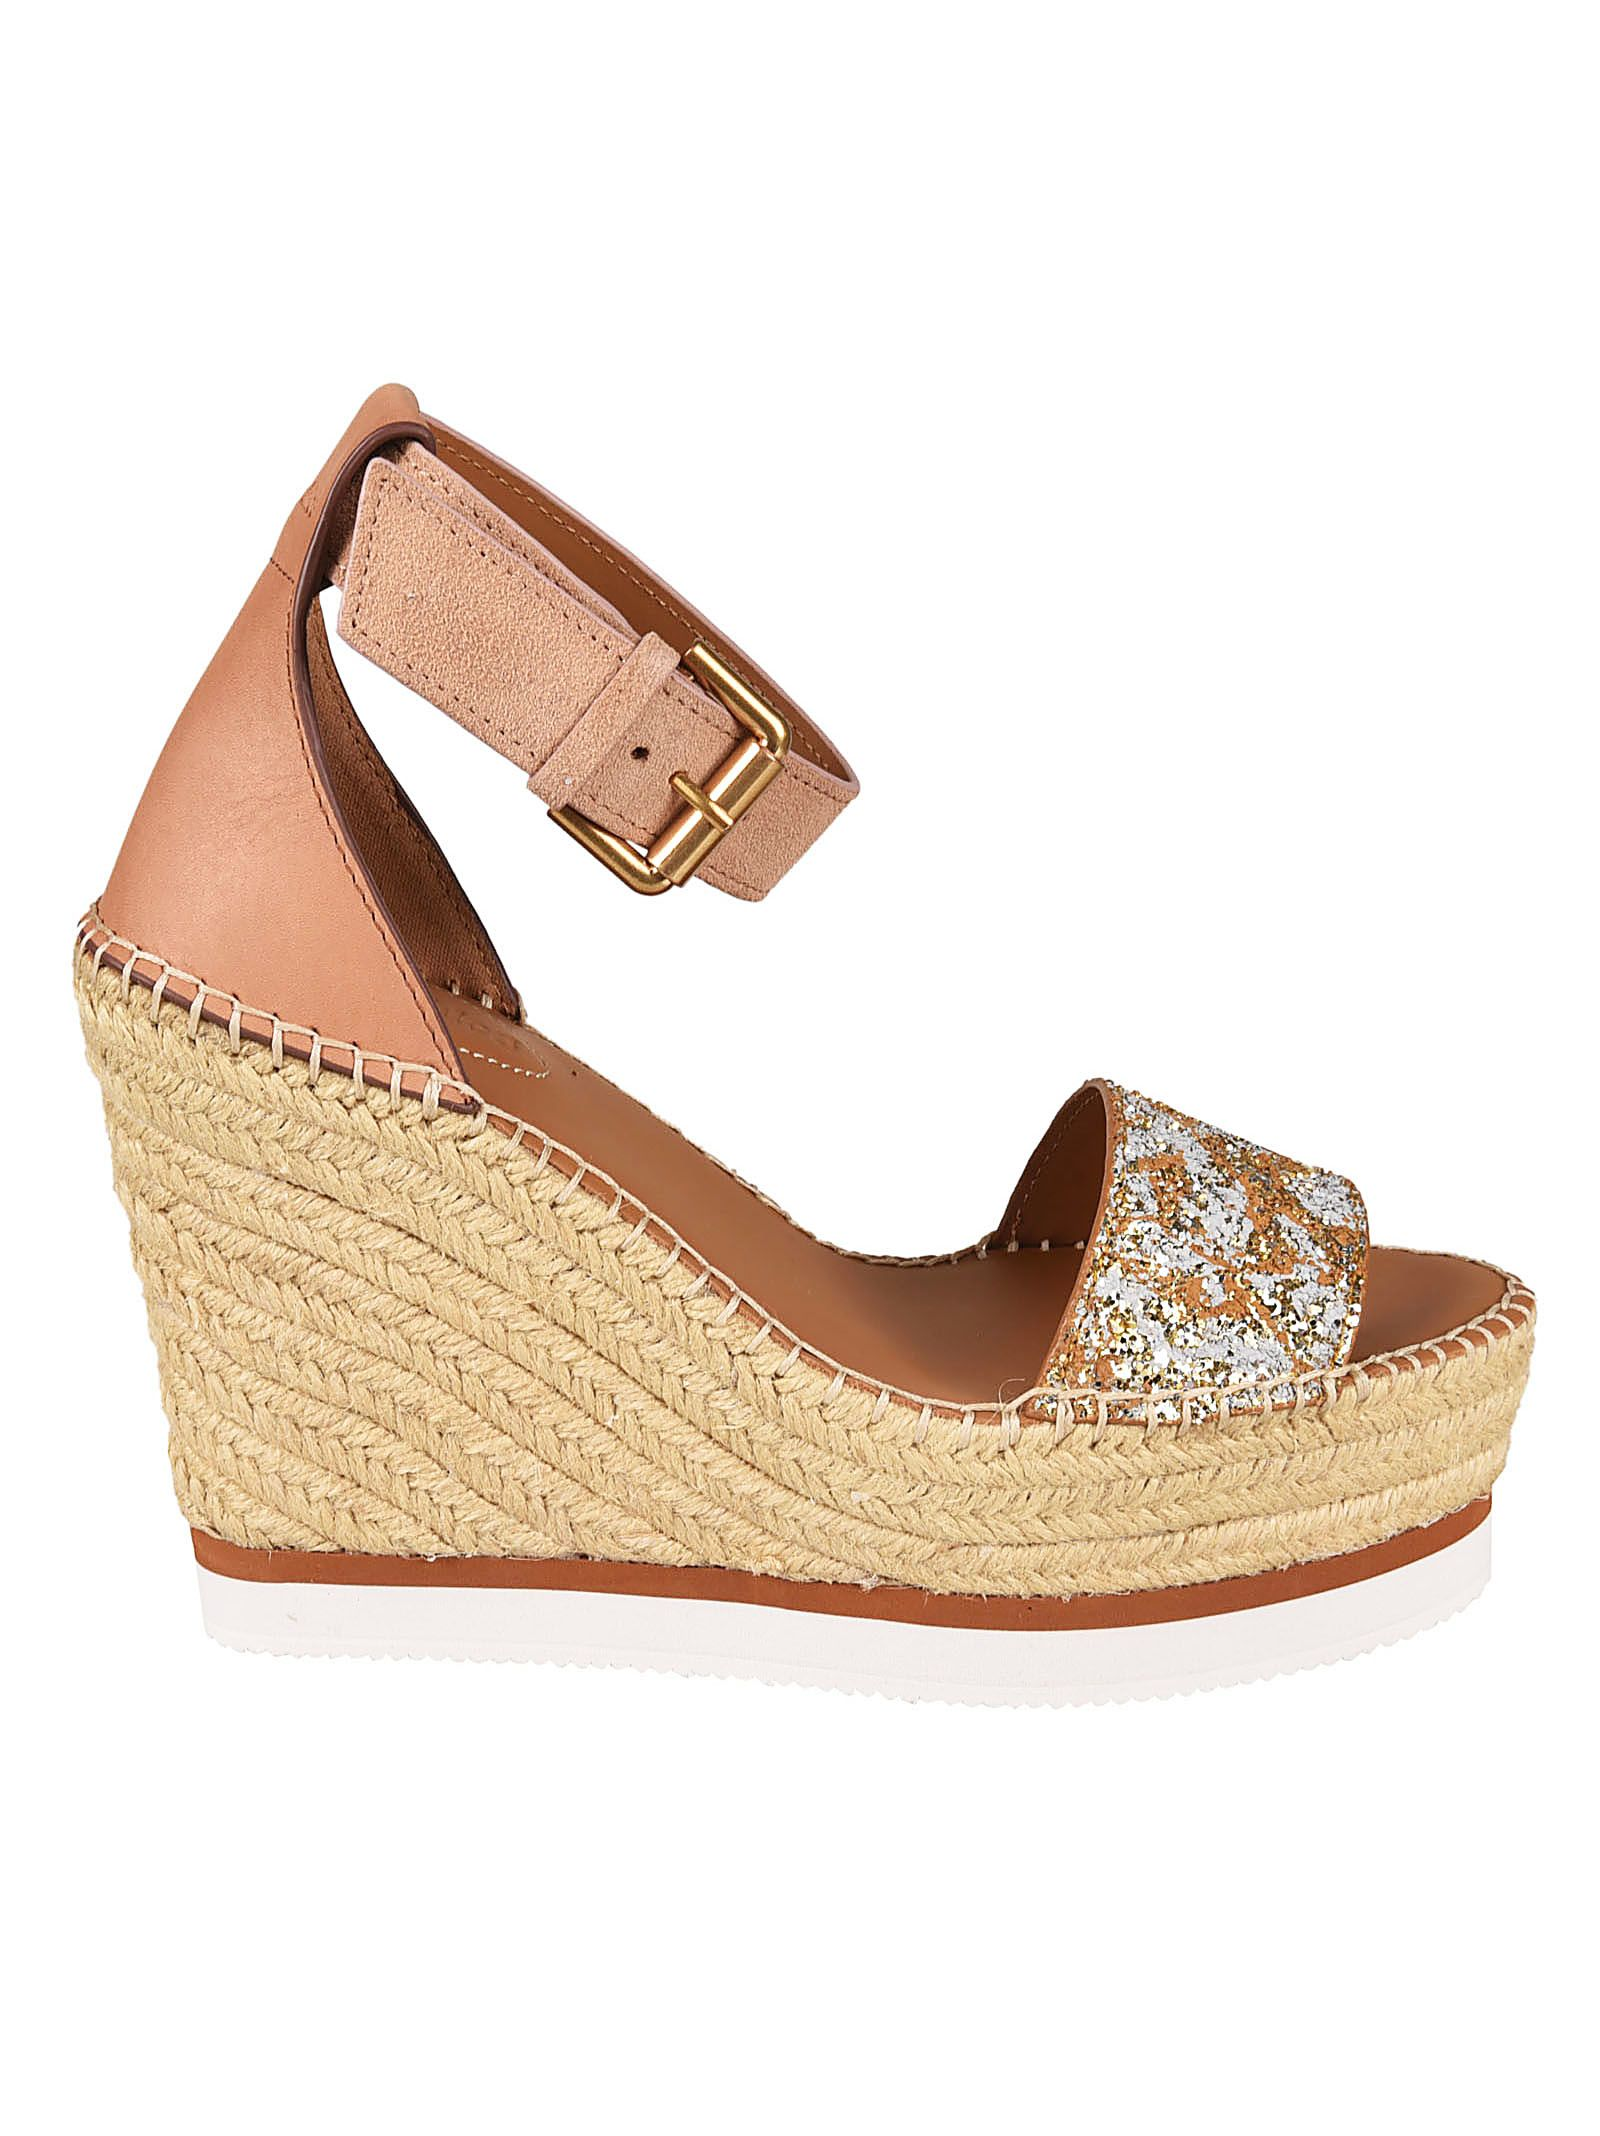 aa532ba73c7d See by Chloé See By Chloé Braided Platform Sandals - Beige ...